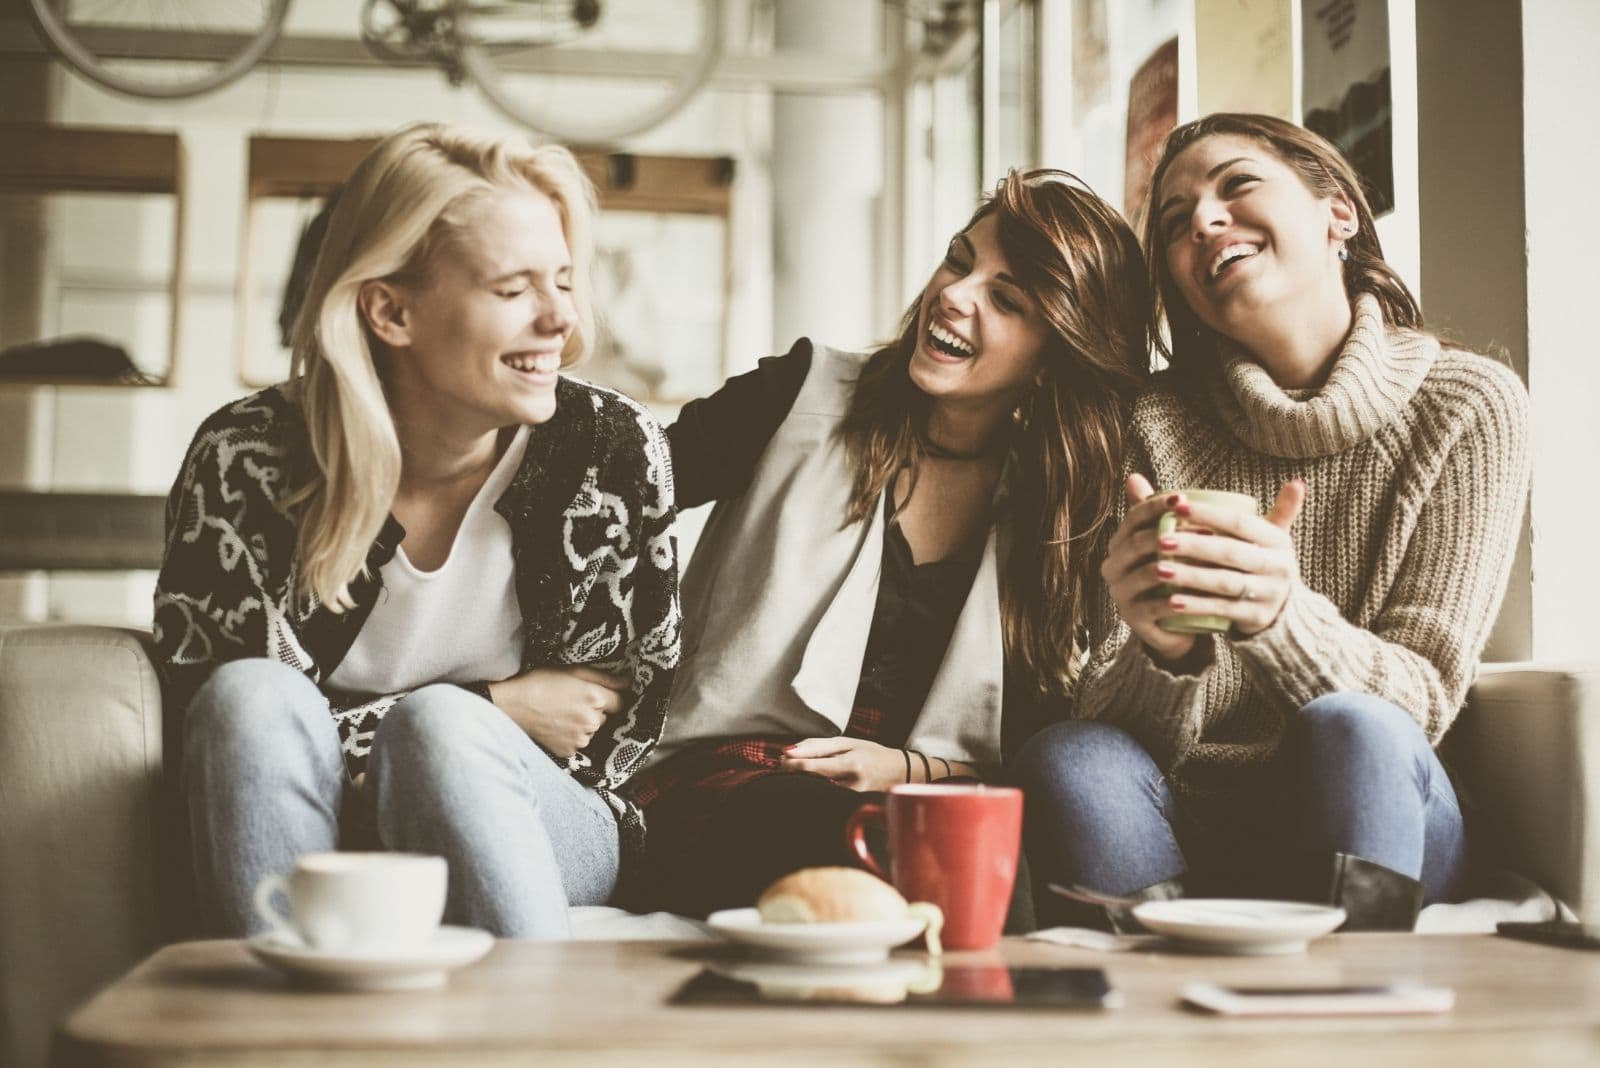 group of girl friends having a good time together drinking coffee inside the cafe